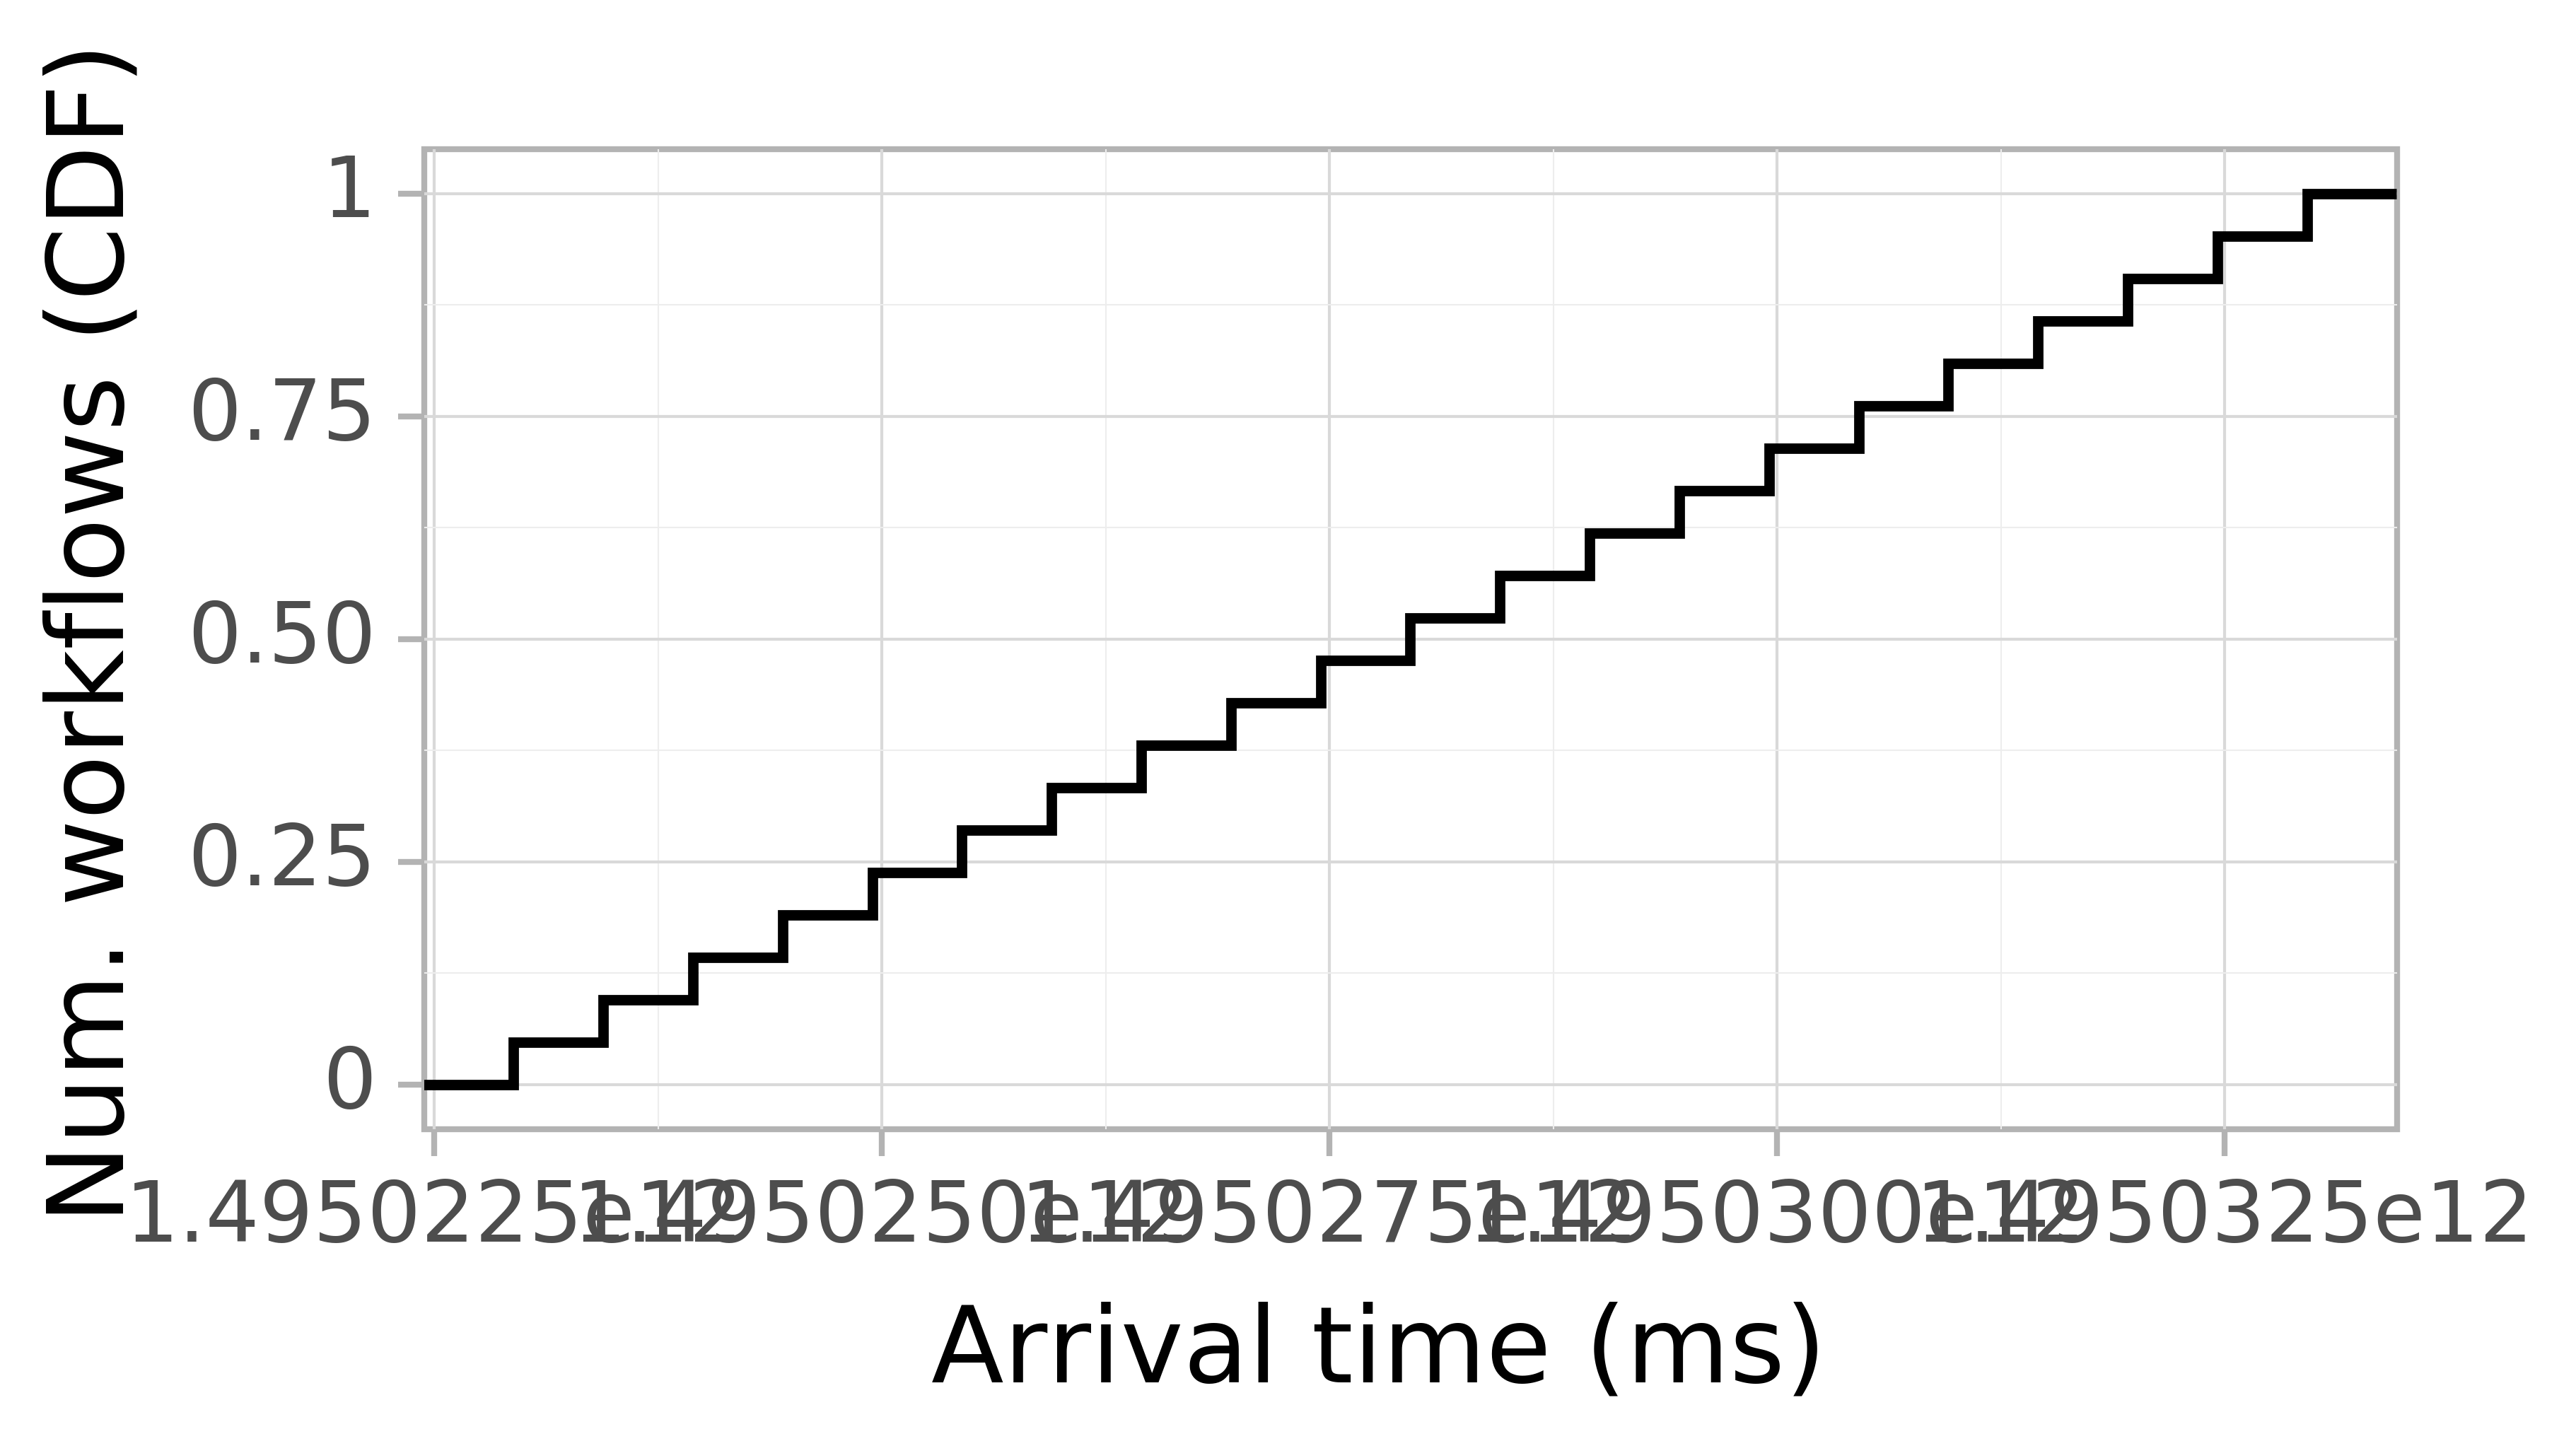 Job arrival CDF graph for the askalon-new_ee60 trace.